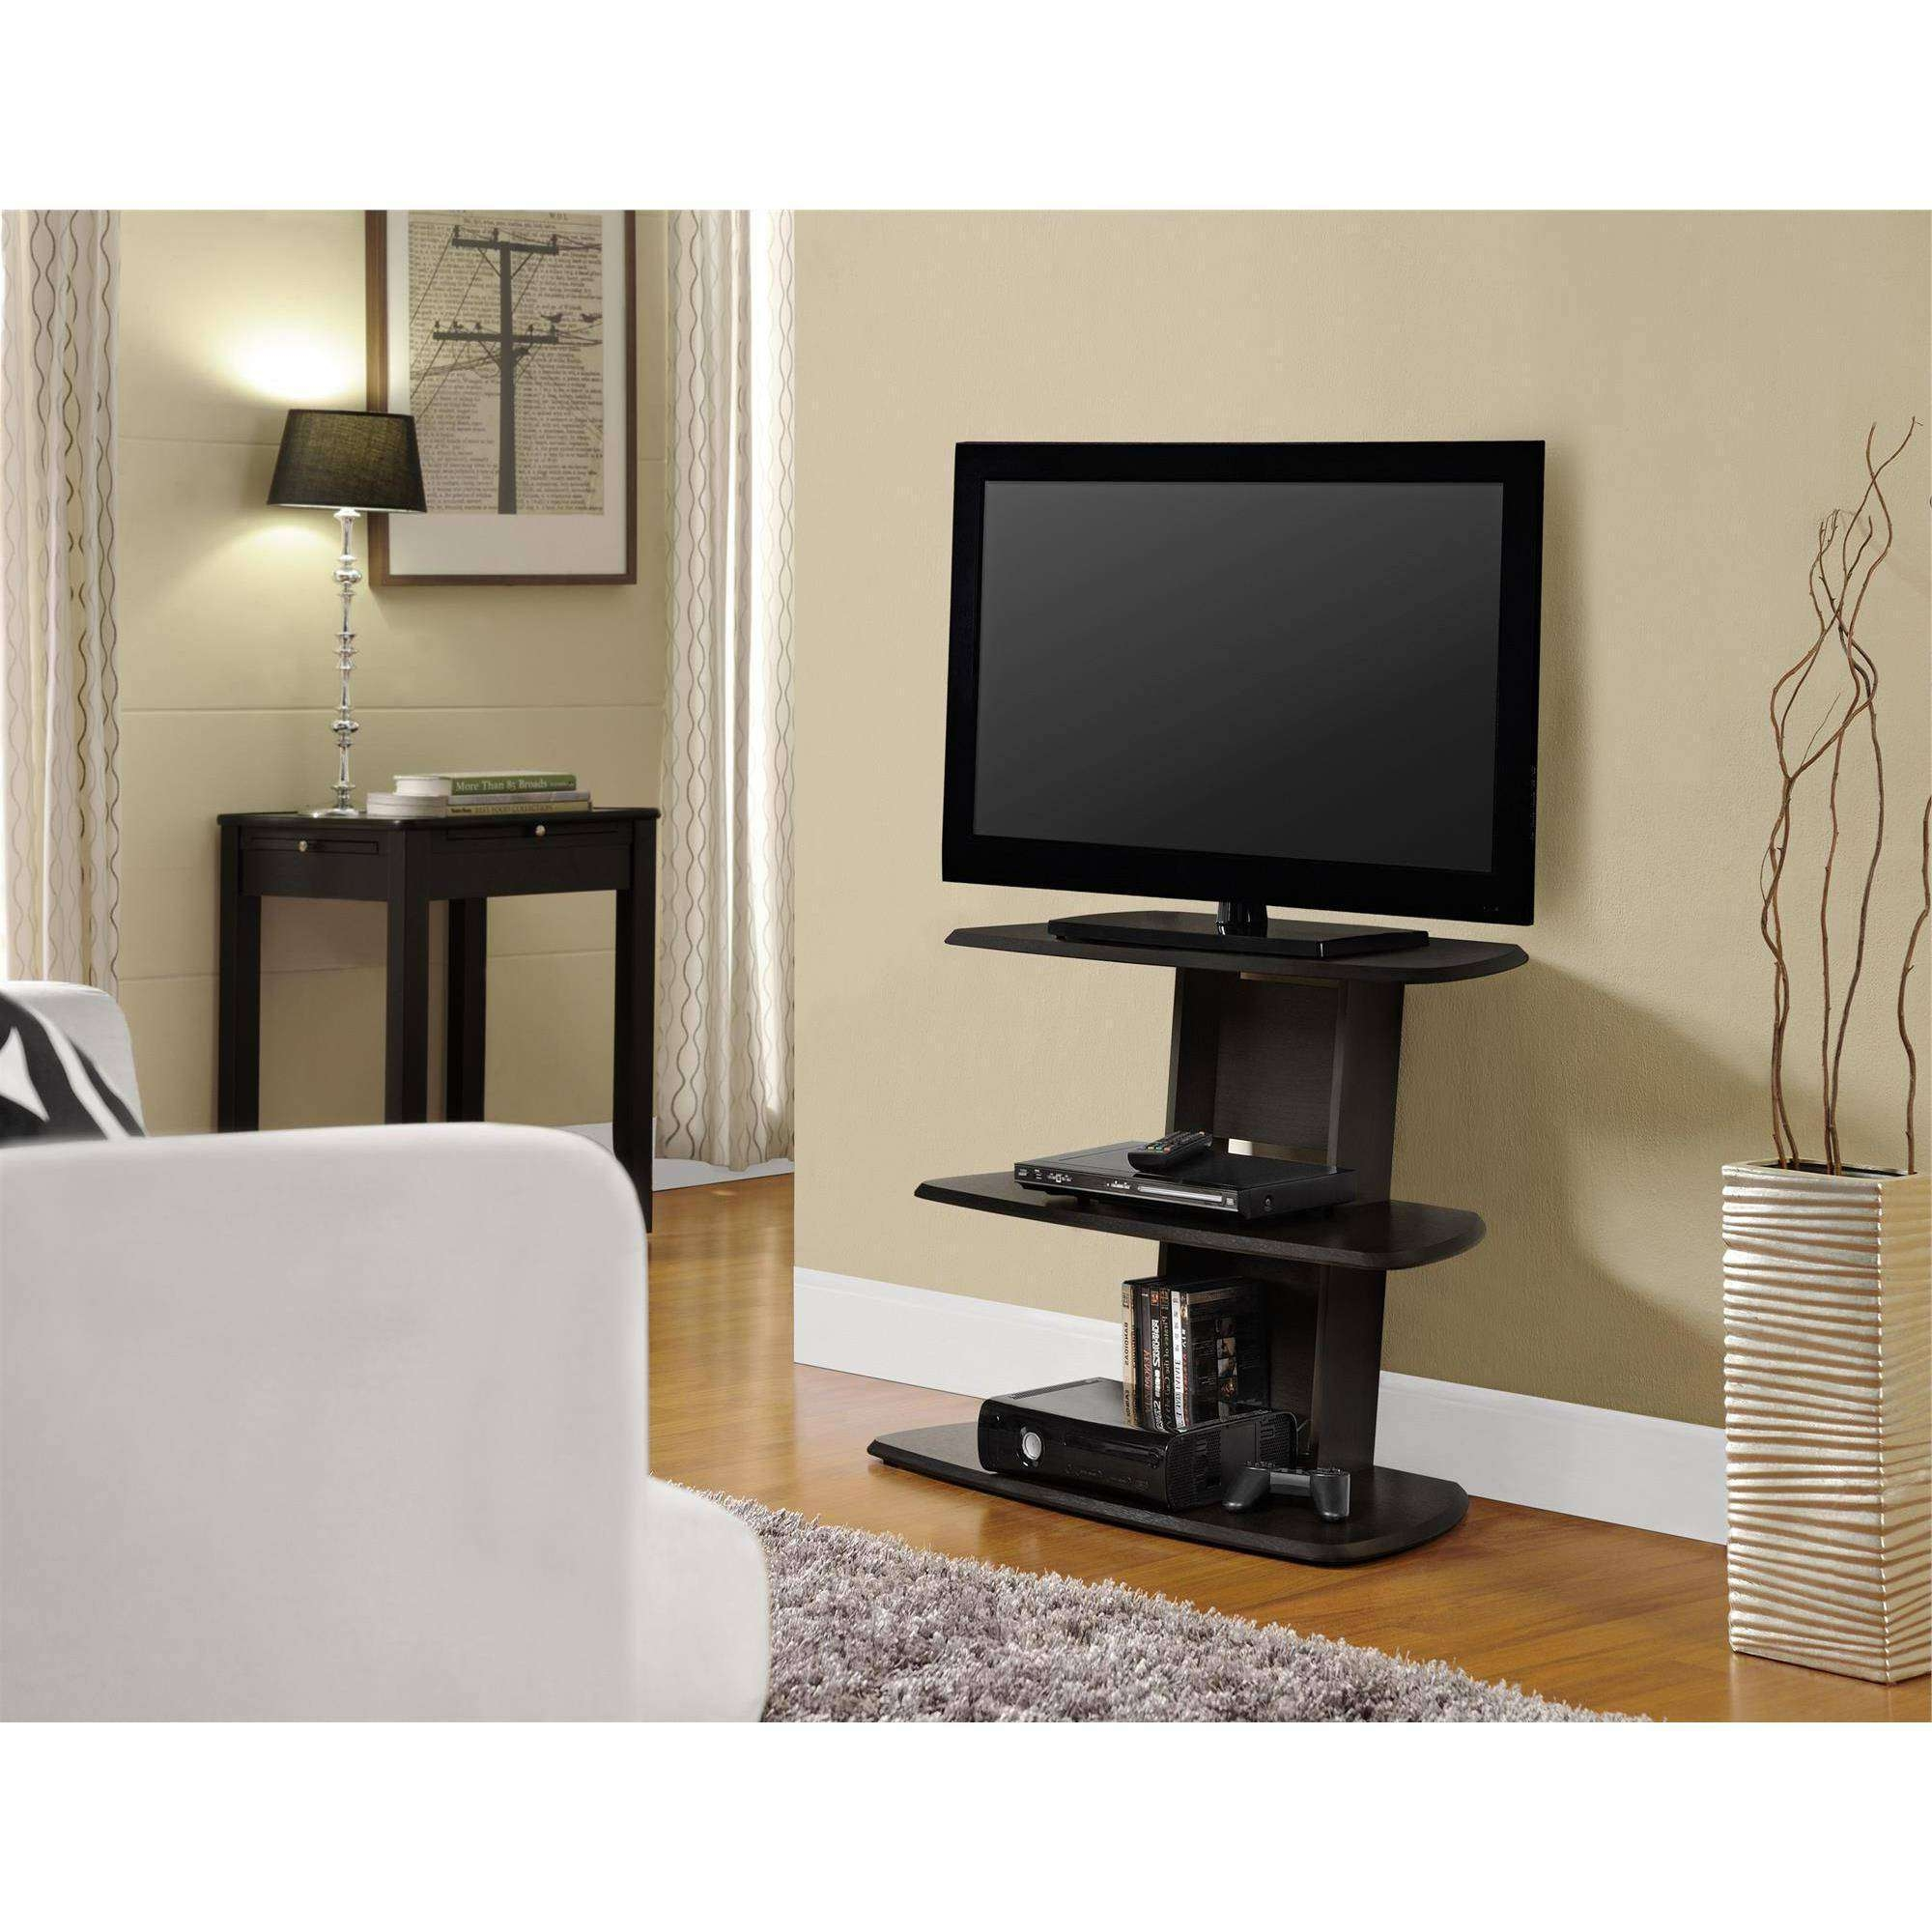 Get Tv Stand 32 Inch For Your Tv – Furniture Depot With 32 Inch Corner Tv Stands (View 5 of 15)